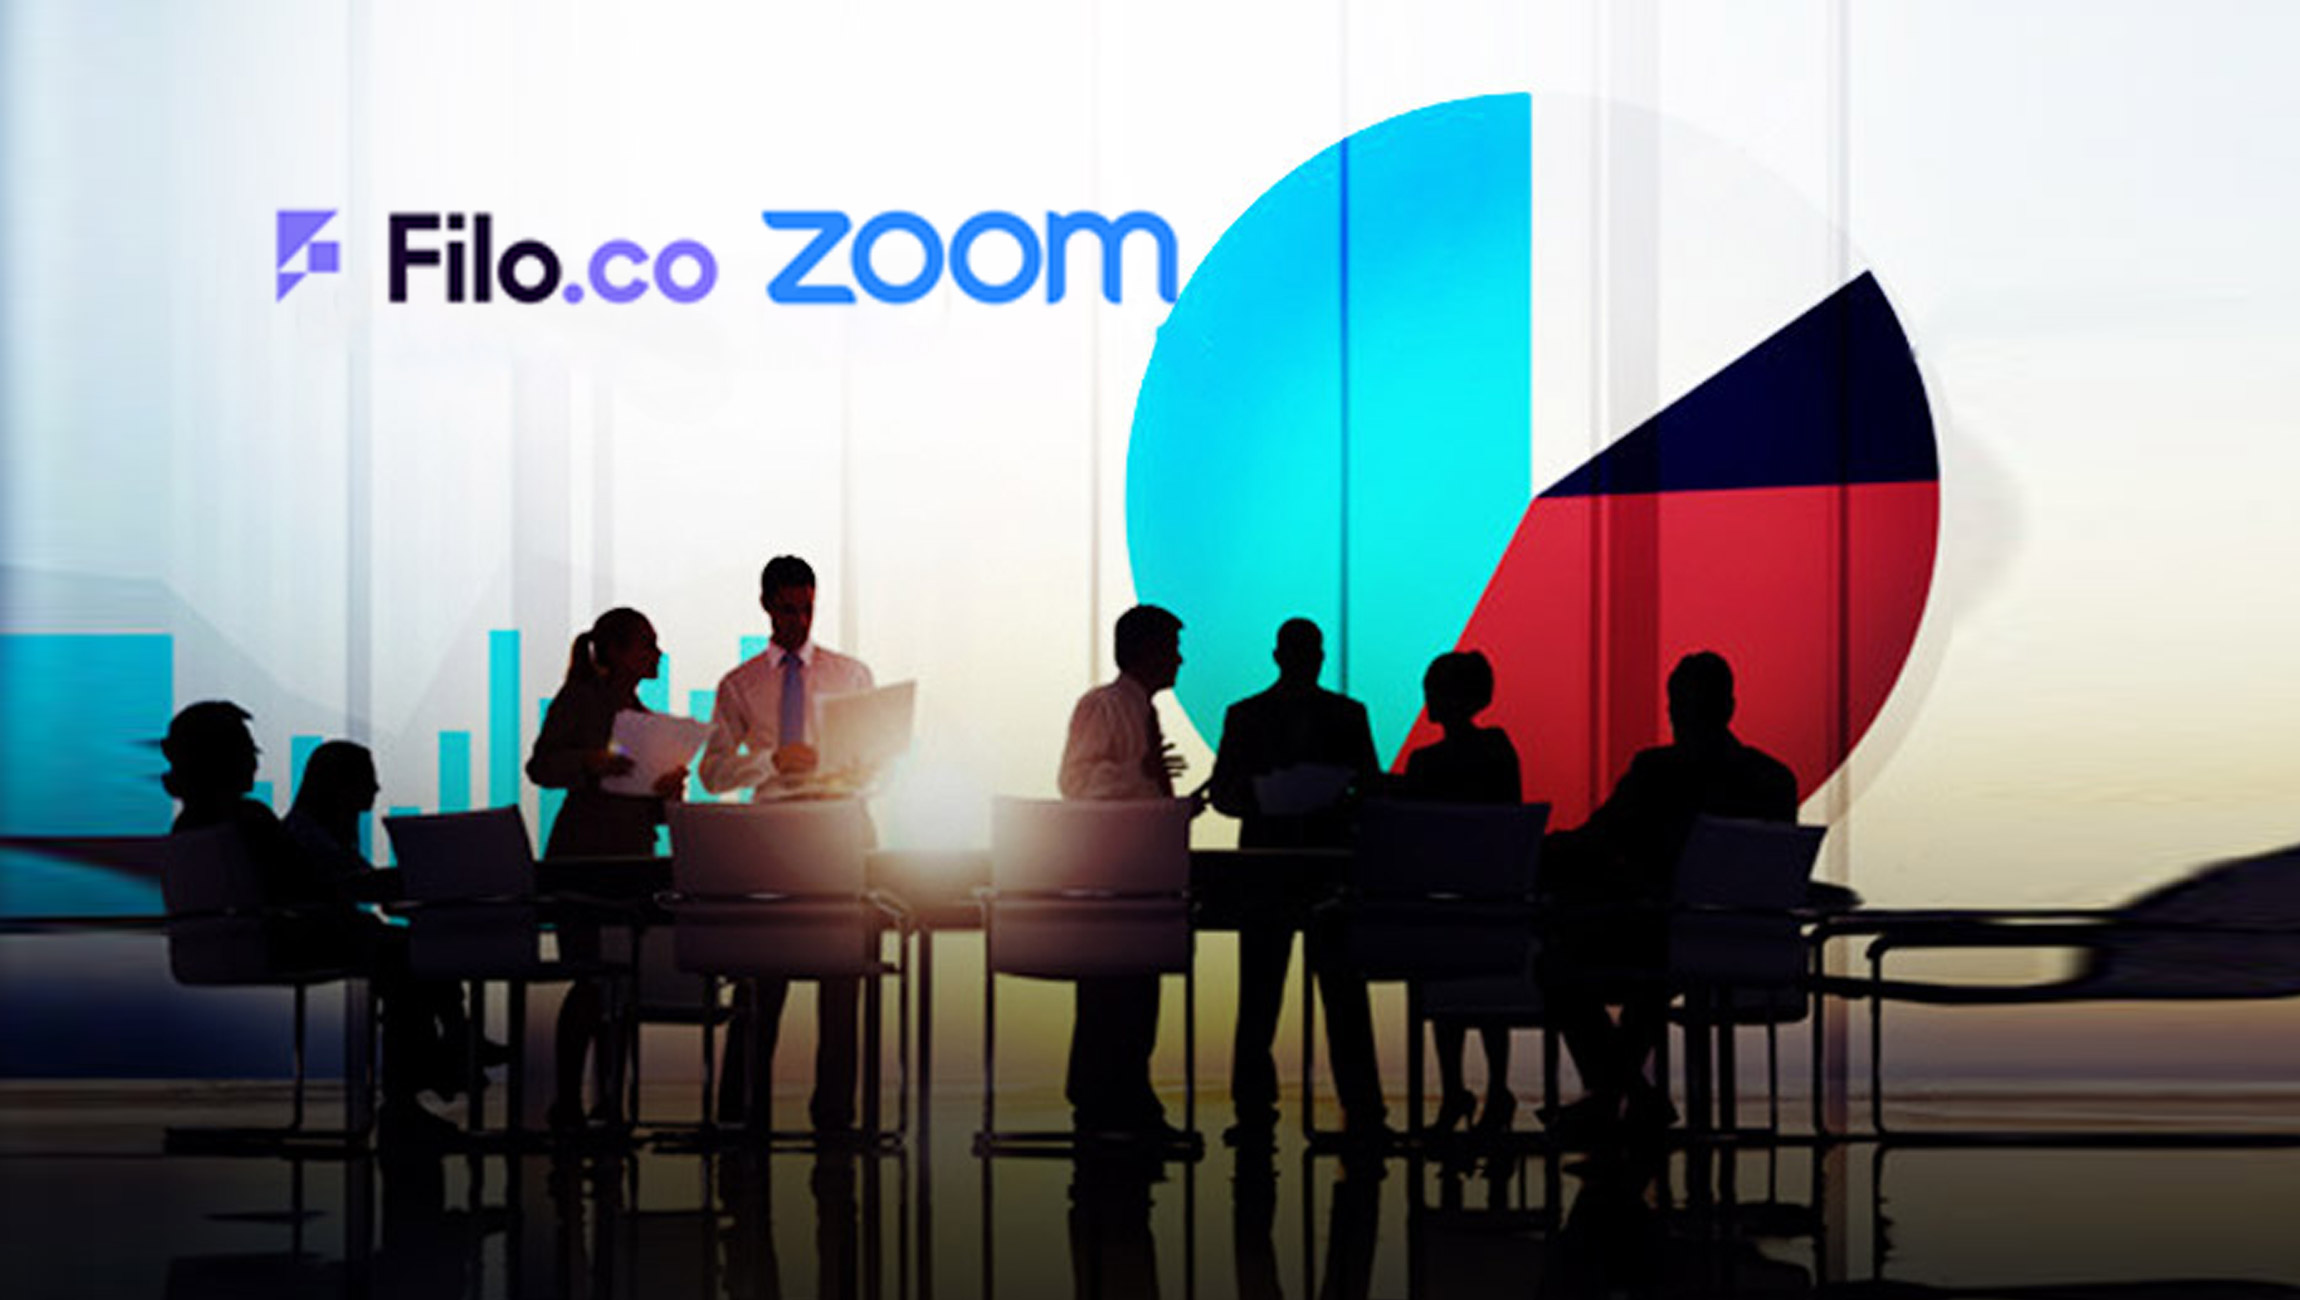 Filo.co Teams Up with Zoom to Empower Distributed Teams